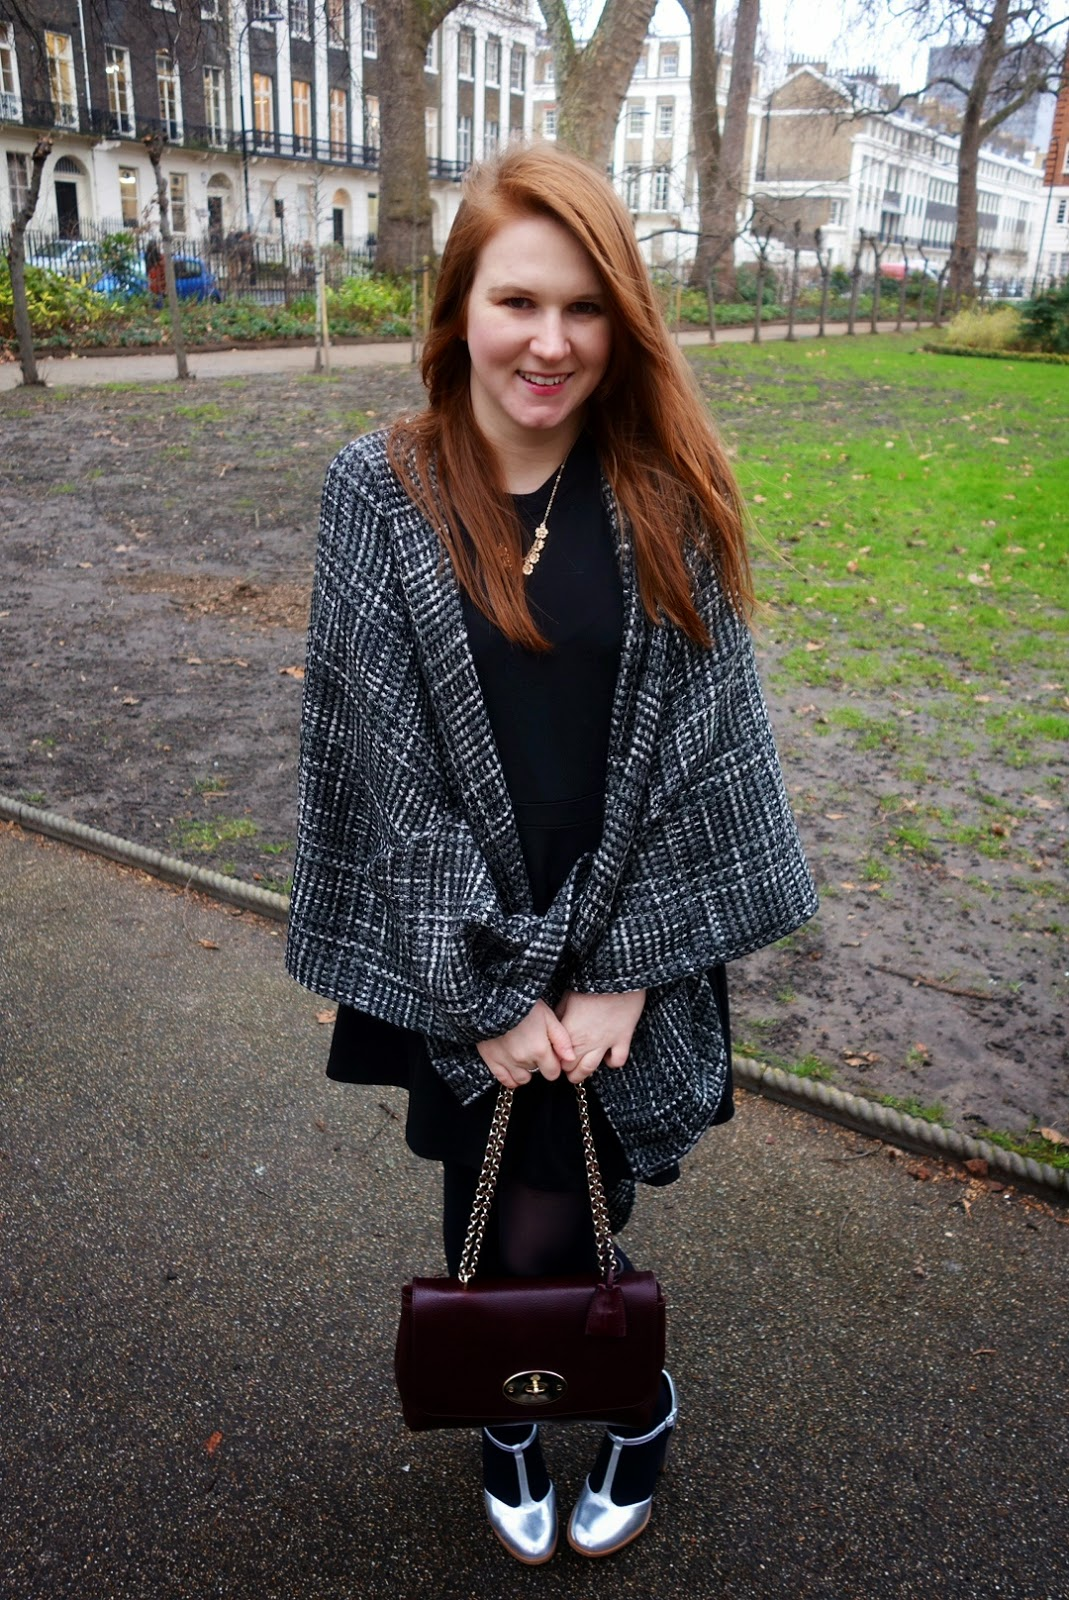 cape fashion blogger outfit style england london handmade mulberry